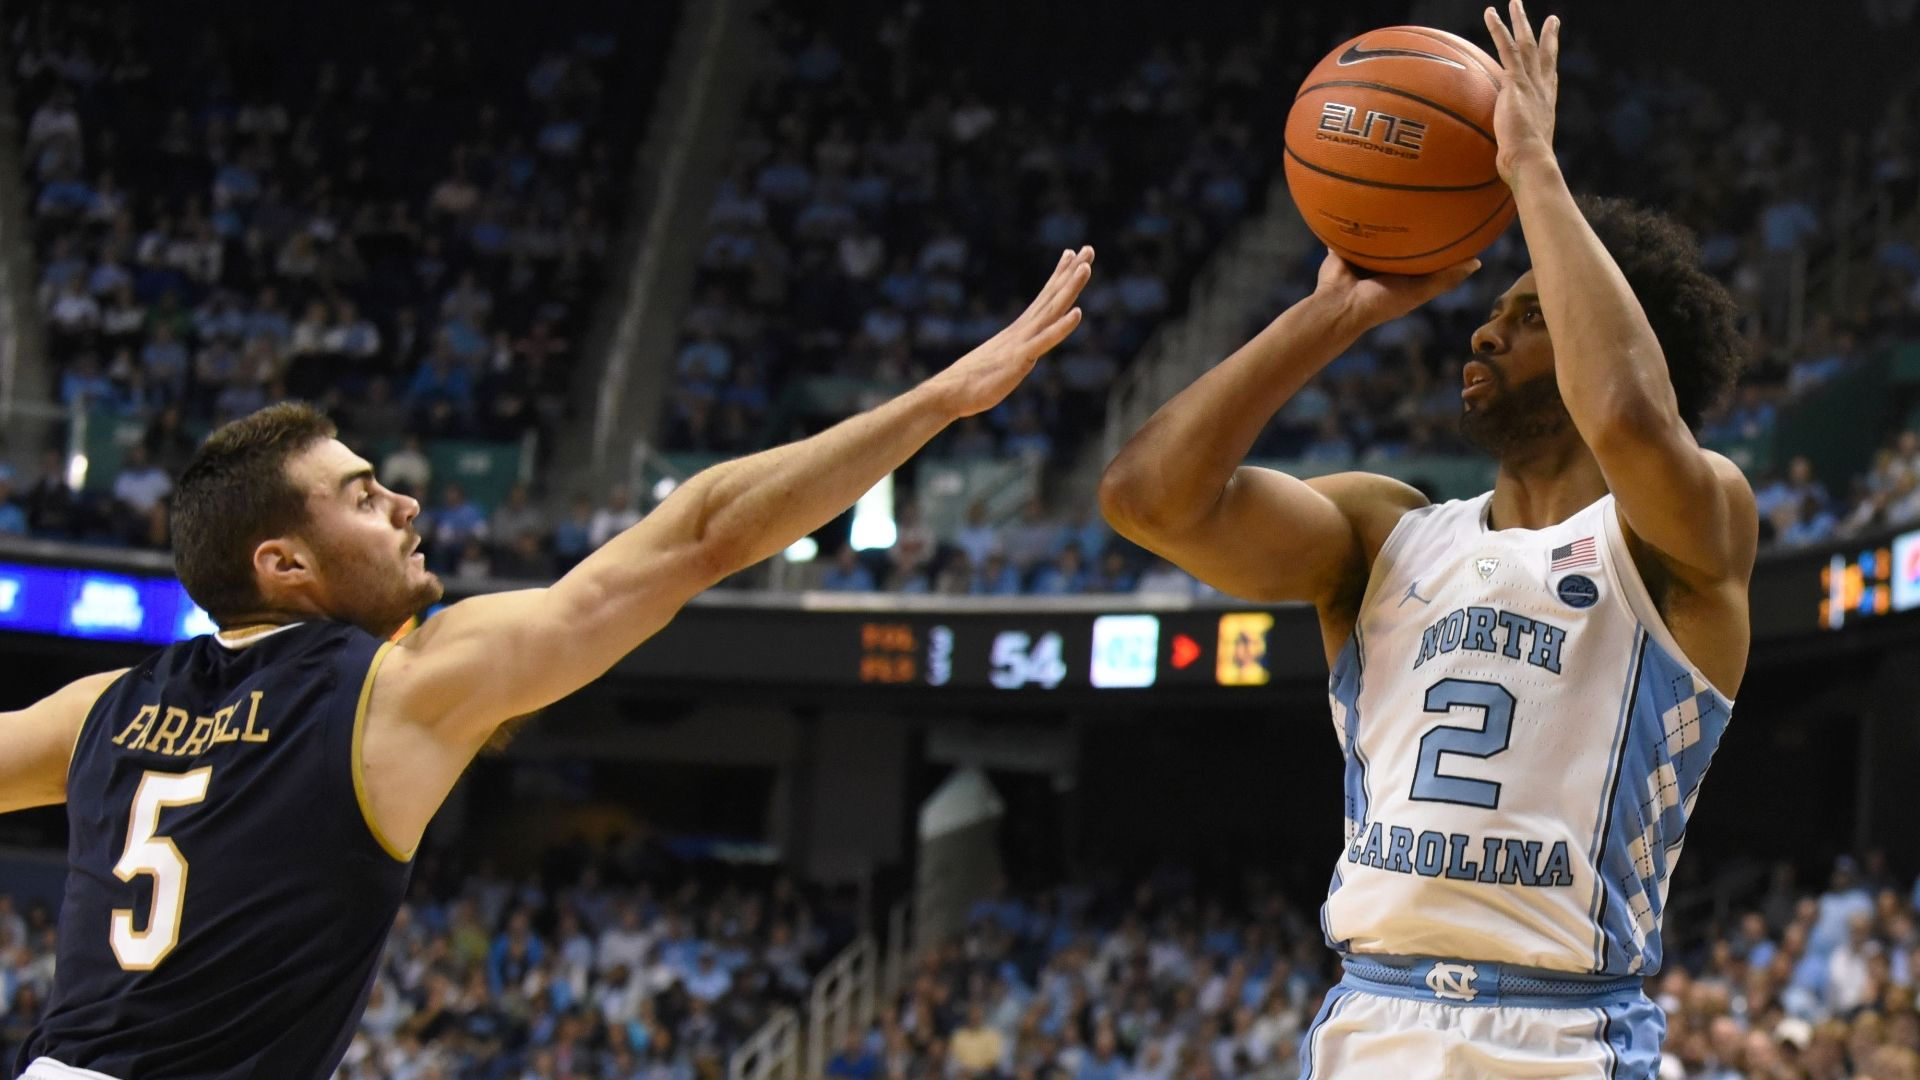 Balanced attack fuels UNC to win over No. 20 Notre Dame